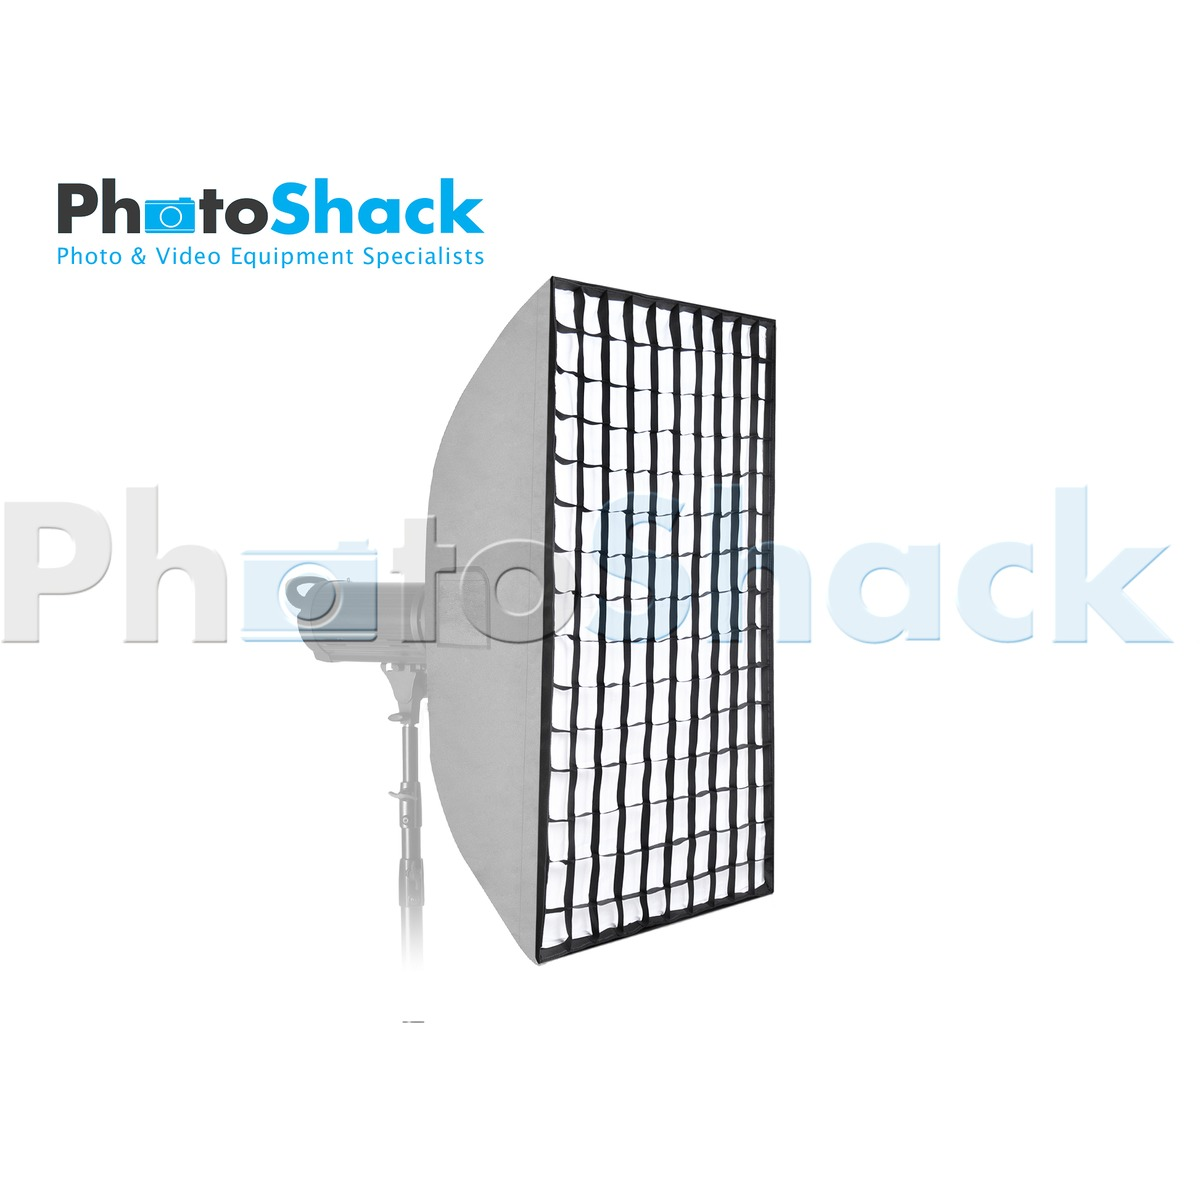 Softbox 60x90cm with Grid (Heat resistant) - Bowens